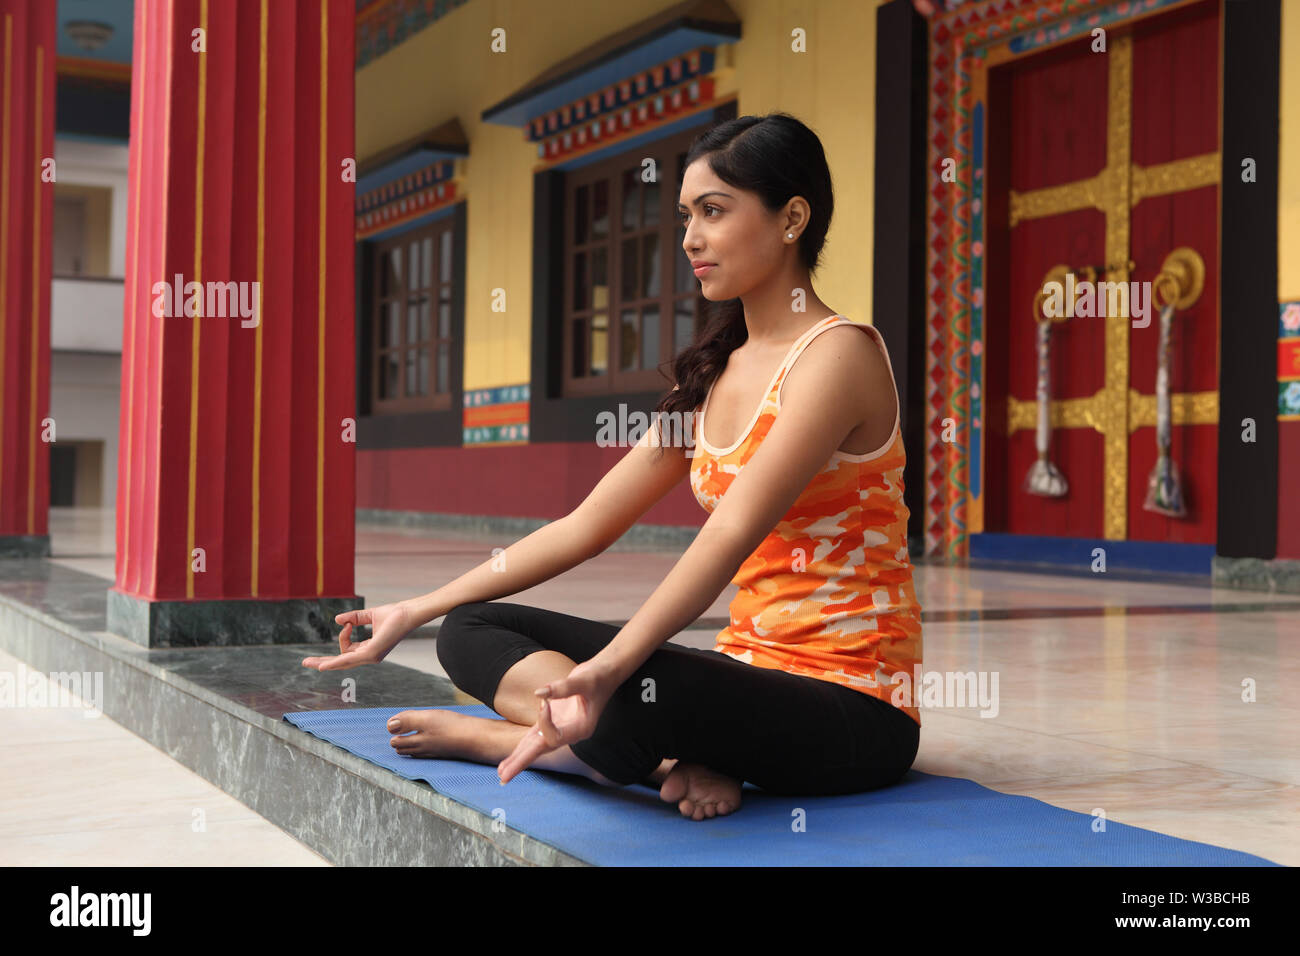 Indian Woman Practicing Yoga In A Monastery New Delhi India Stock Photo Alamy